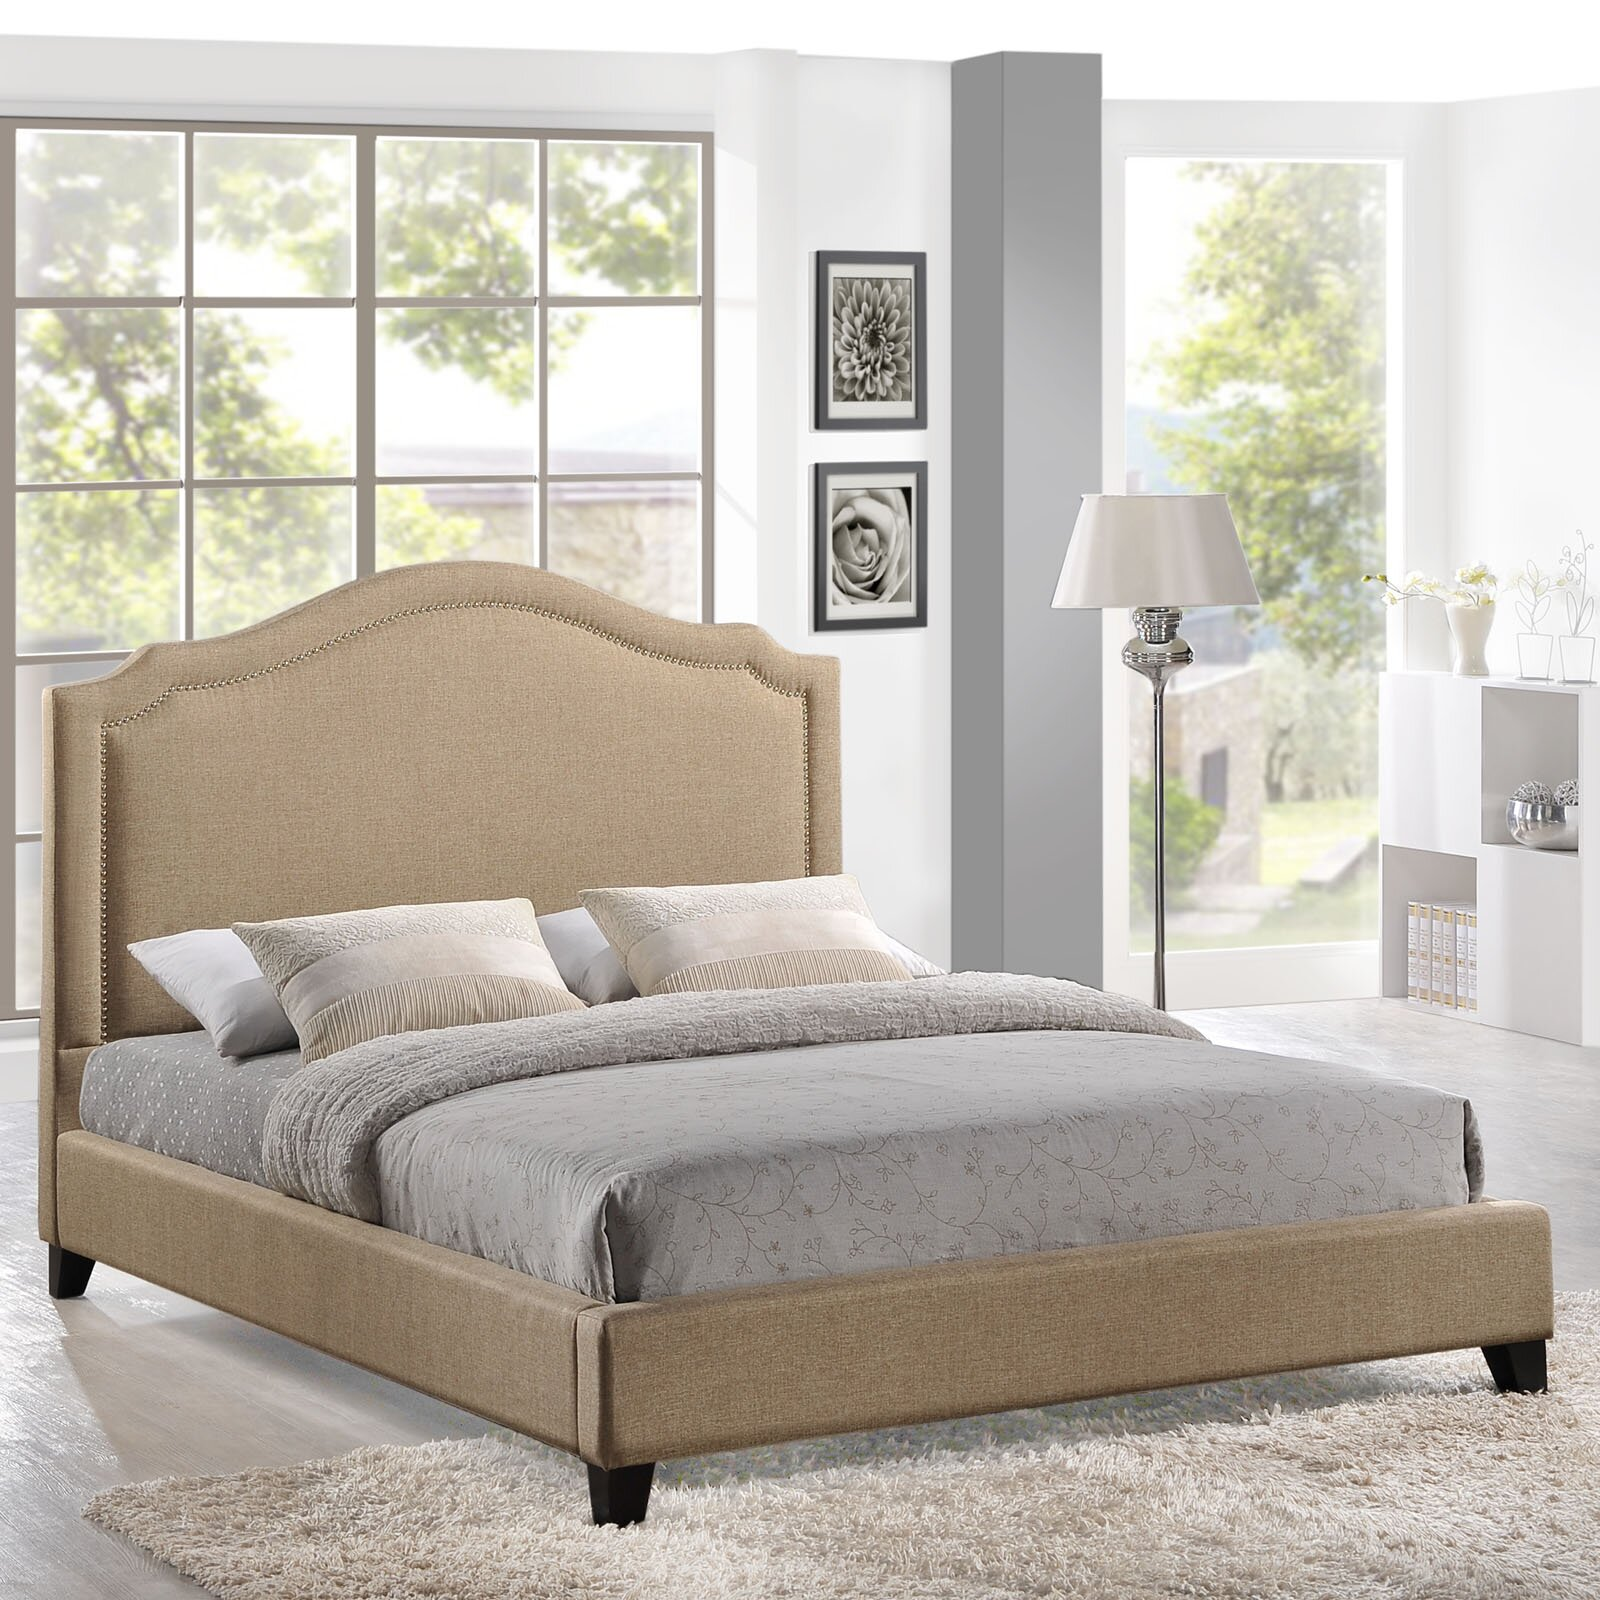 modway queen upholstered platform bed reviews wayfair. Black Bedroom Furniture Sets. Home Design Ideas